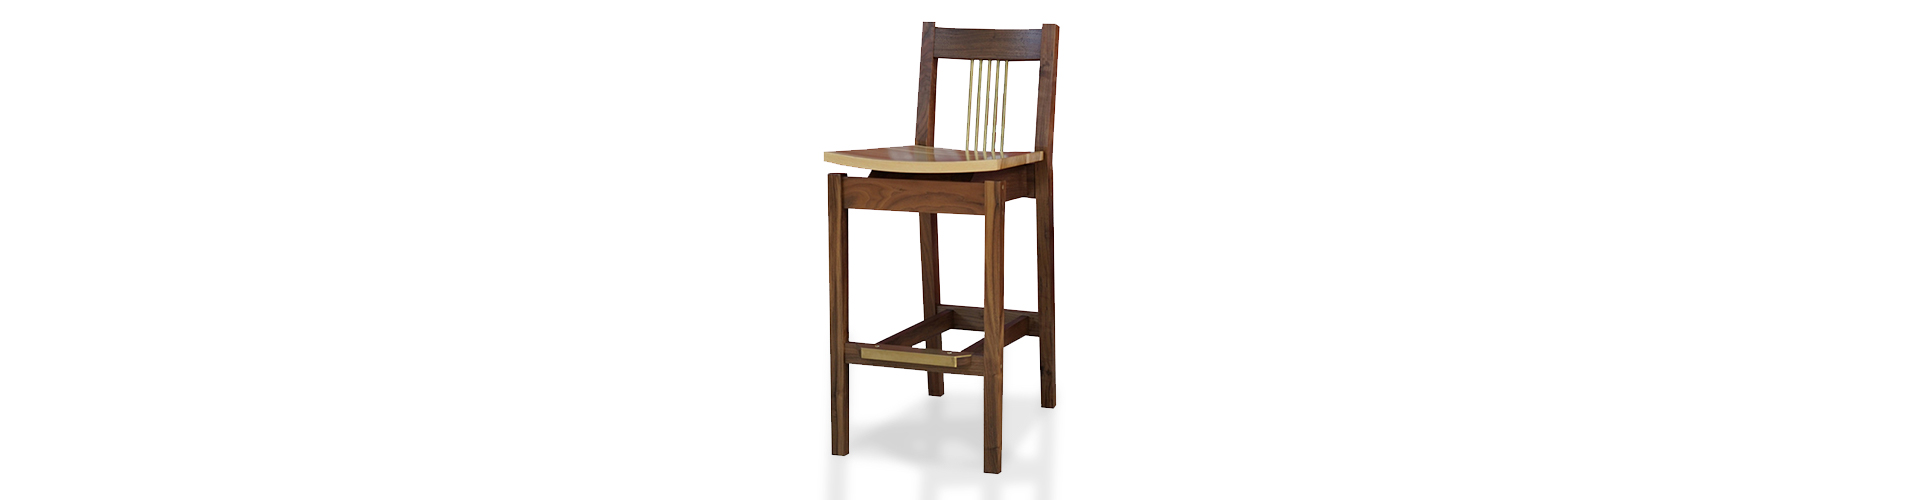 walnut and brass stool from bangers custom made fine wood furniture